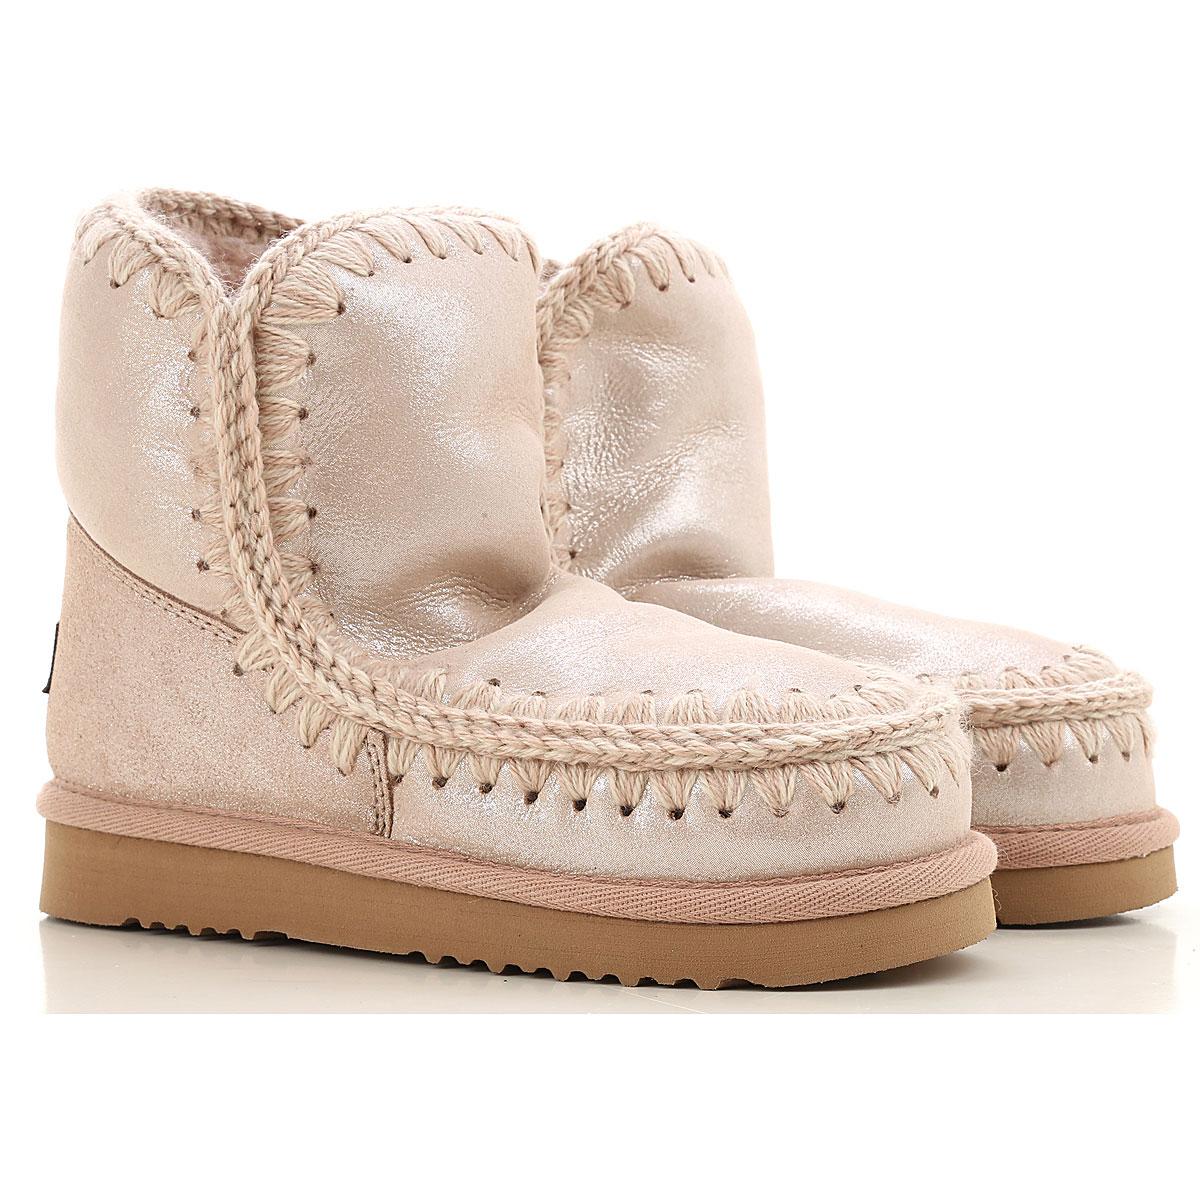 Mou Boots for Women, Booties On Sale, Rose, Suede leather, 2019, EUR 38 - UK 5 - USA 7 EUR 36 - UK 3 - USA 5.5 EUR 37 - UK 4 - USA 6.5 EUR 38 - UK 5 -